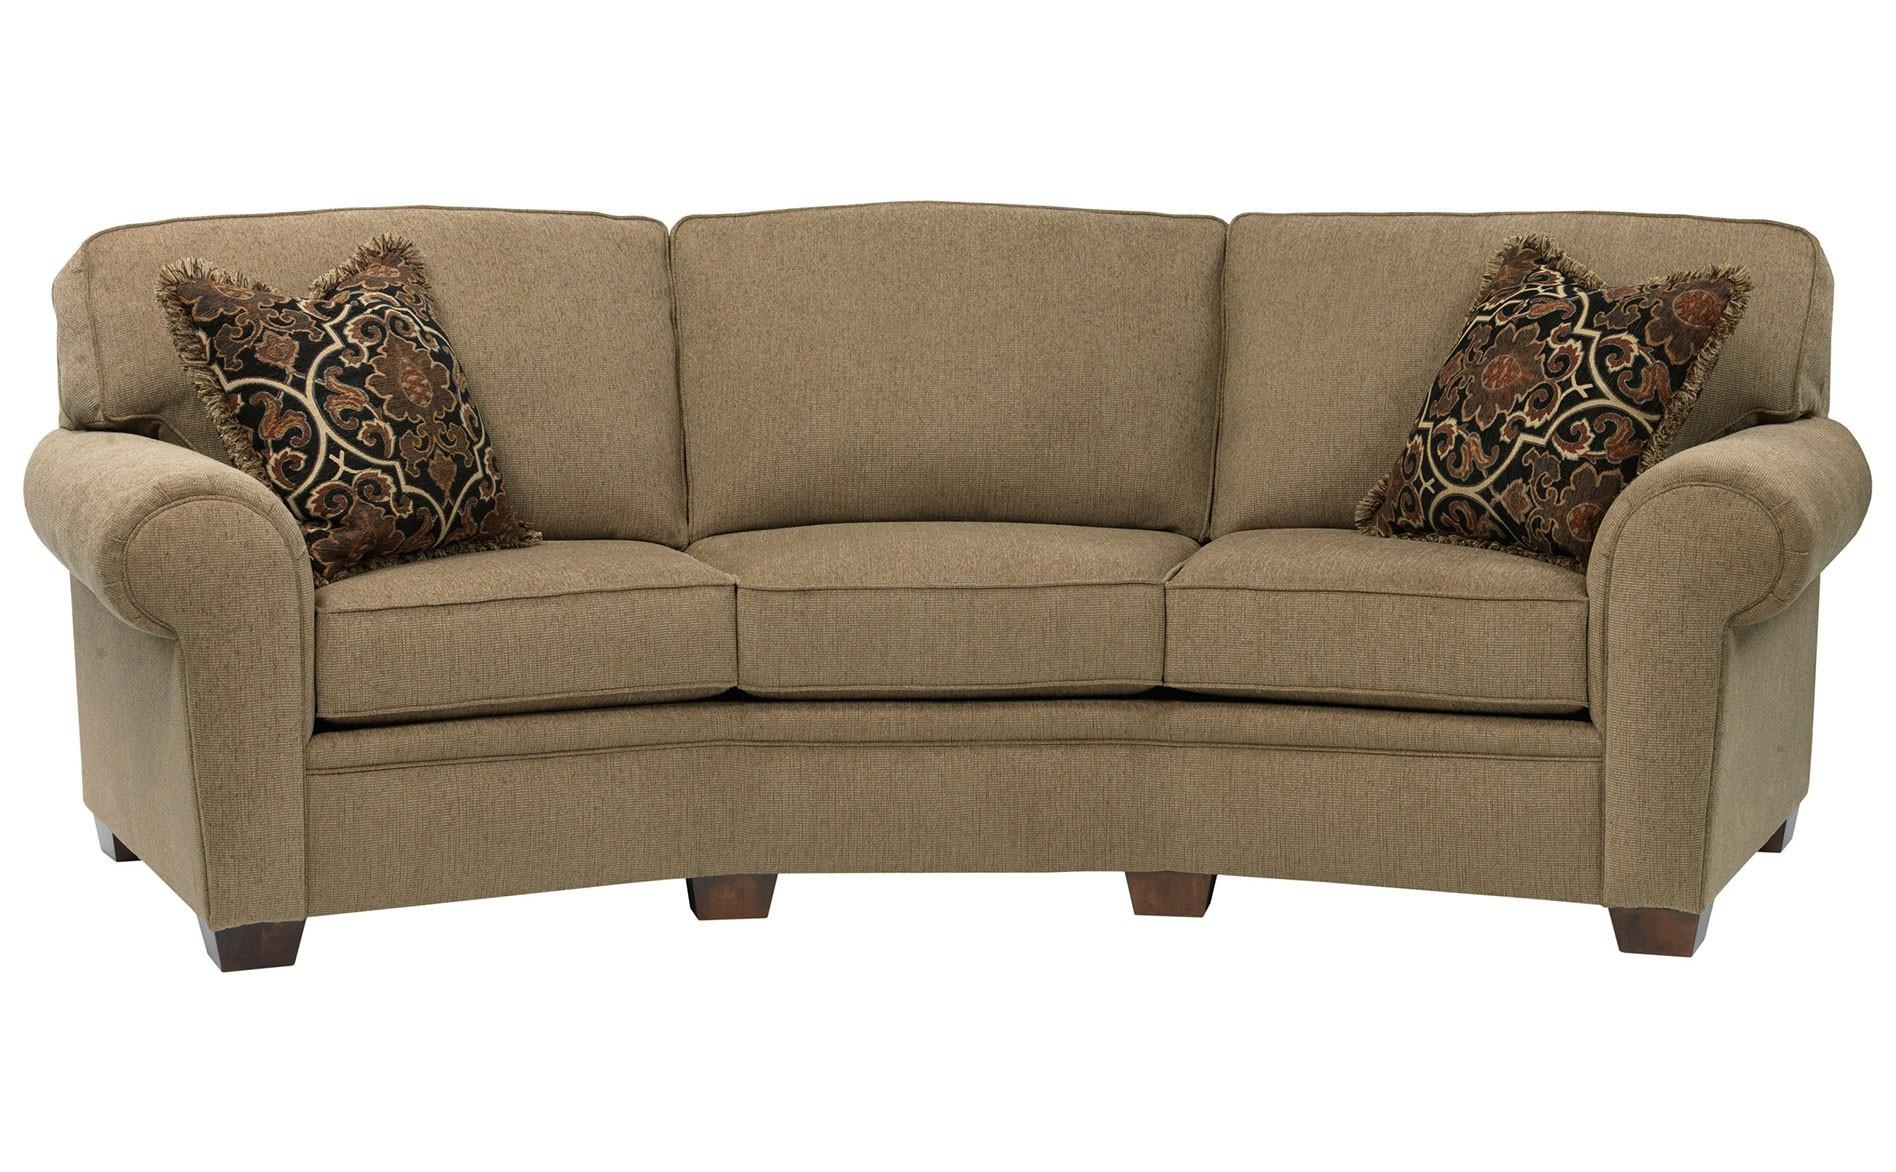 Furniture: Broyhill Mission Furniture | Broyhill Sofas | Broyhill Within Broyhill Sectional Sofa (Image 11 of 15)